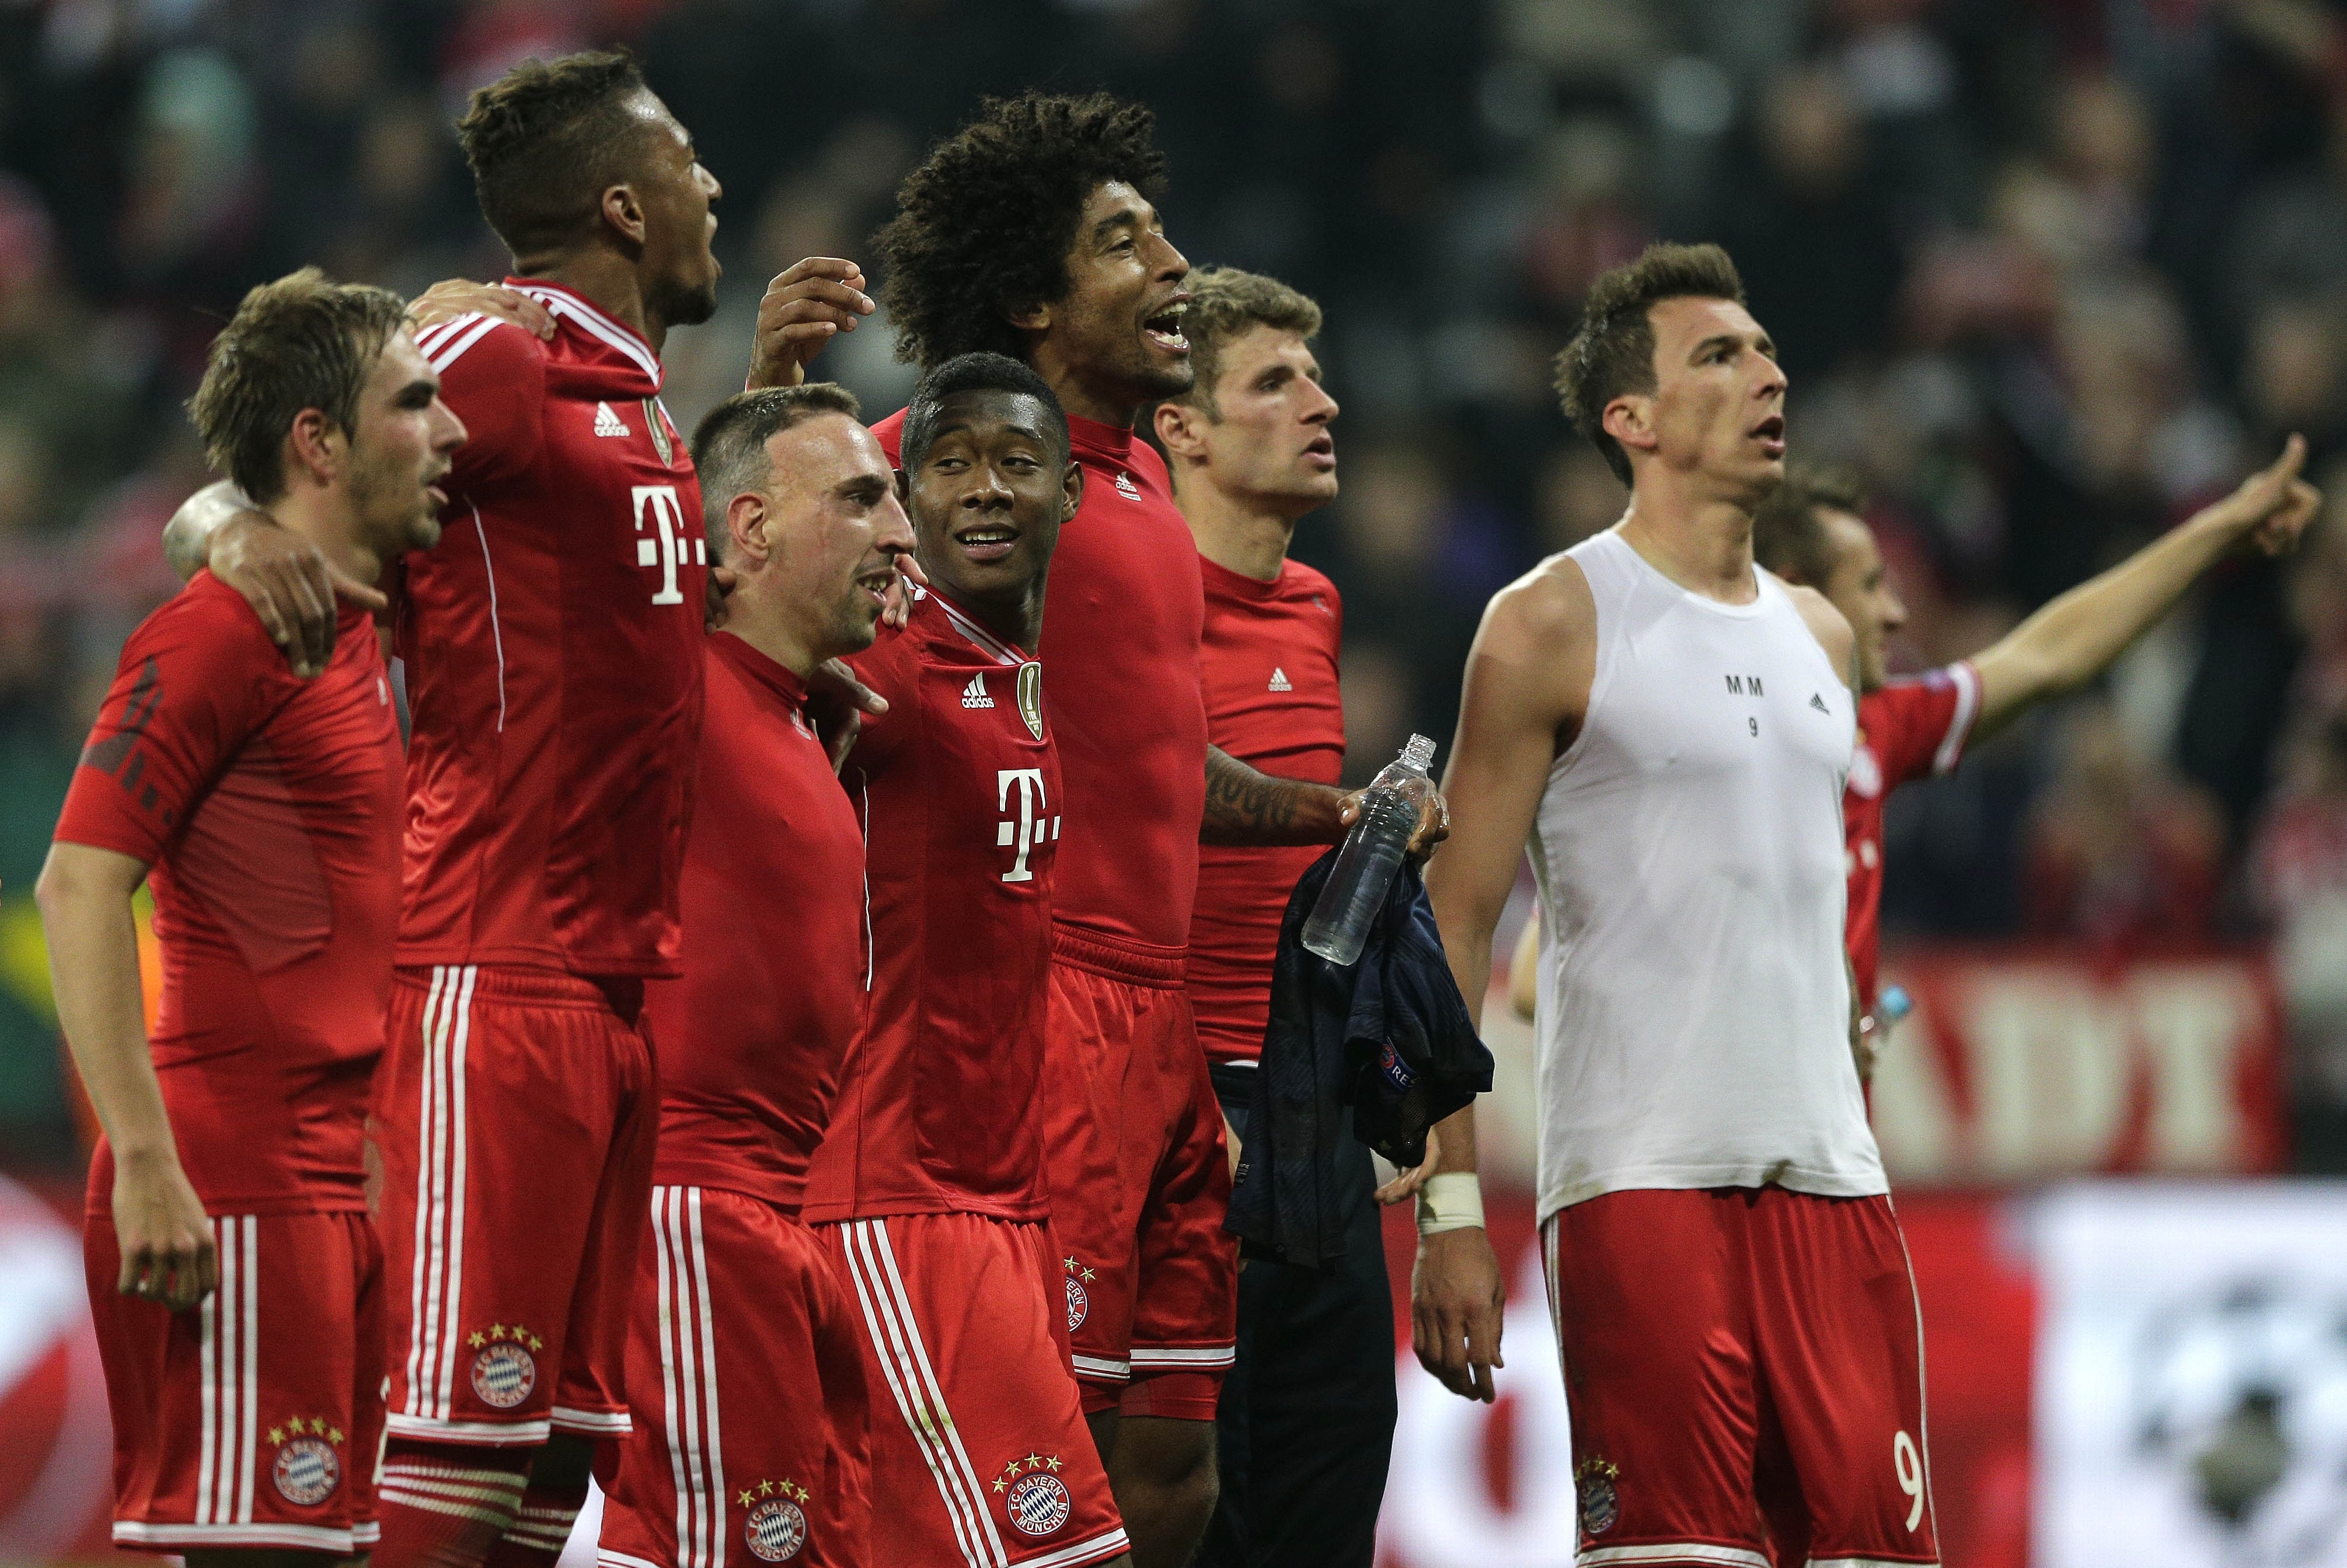 bayern munich vs borussia dortmund tv and live stream team news and key stats bleacher report. Black Bedroom Furniture Sets. Home Design Ideas